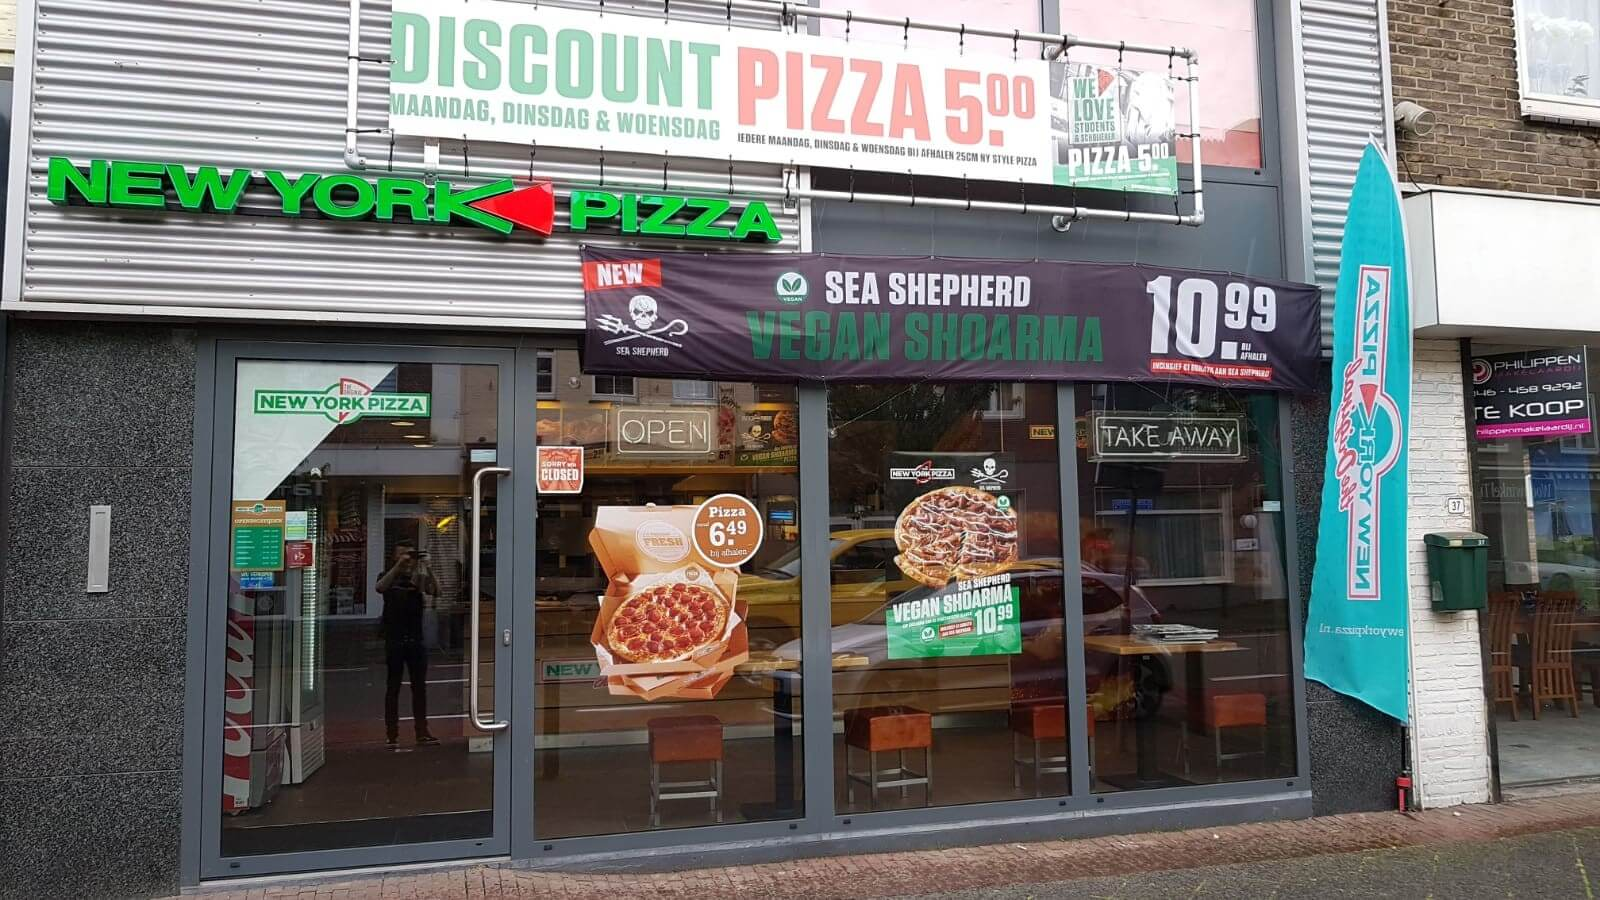 New York Pizza Geleen